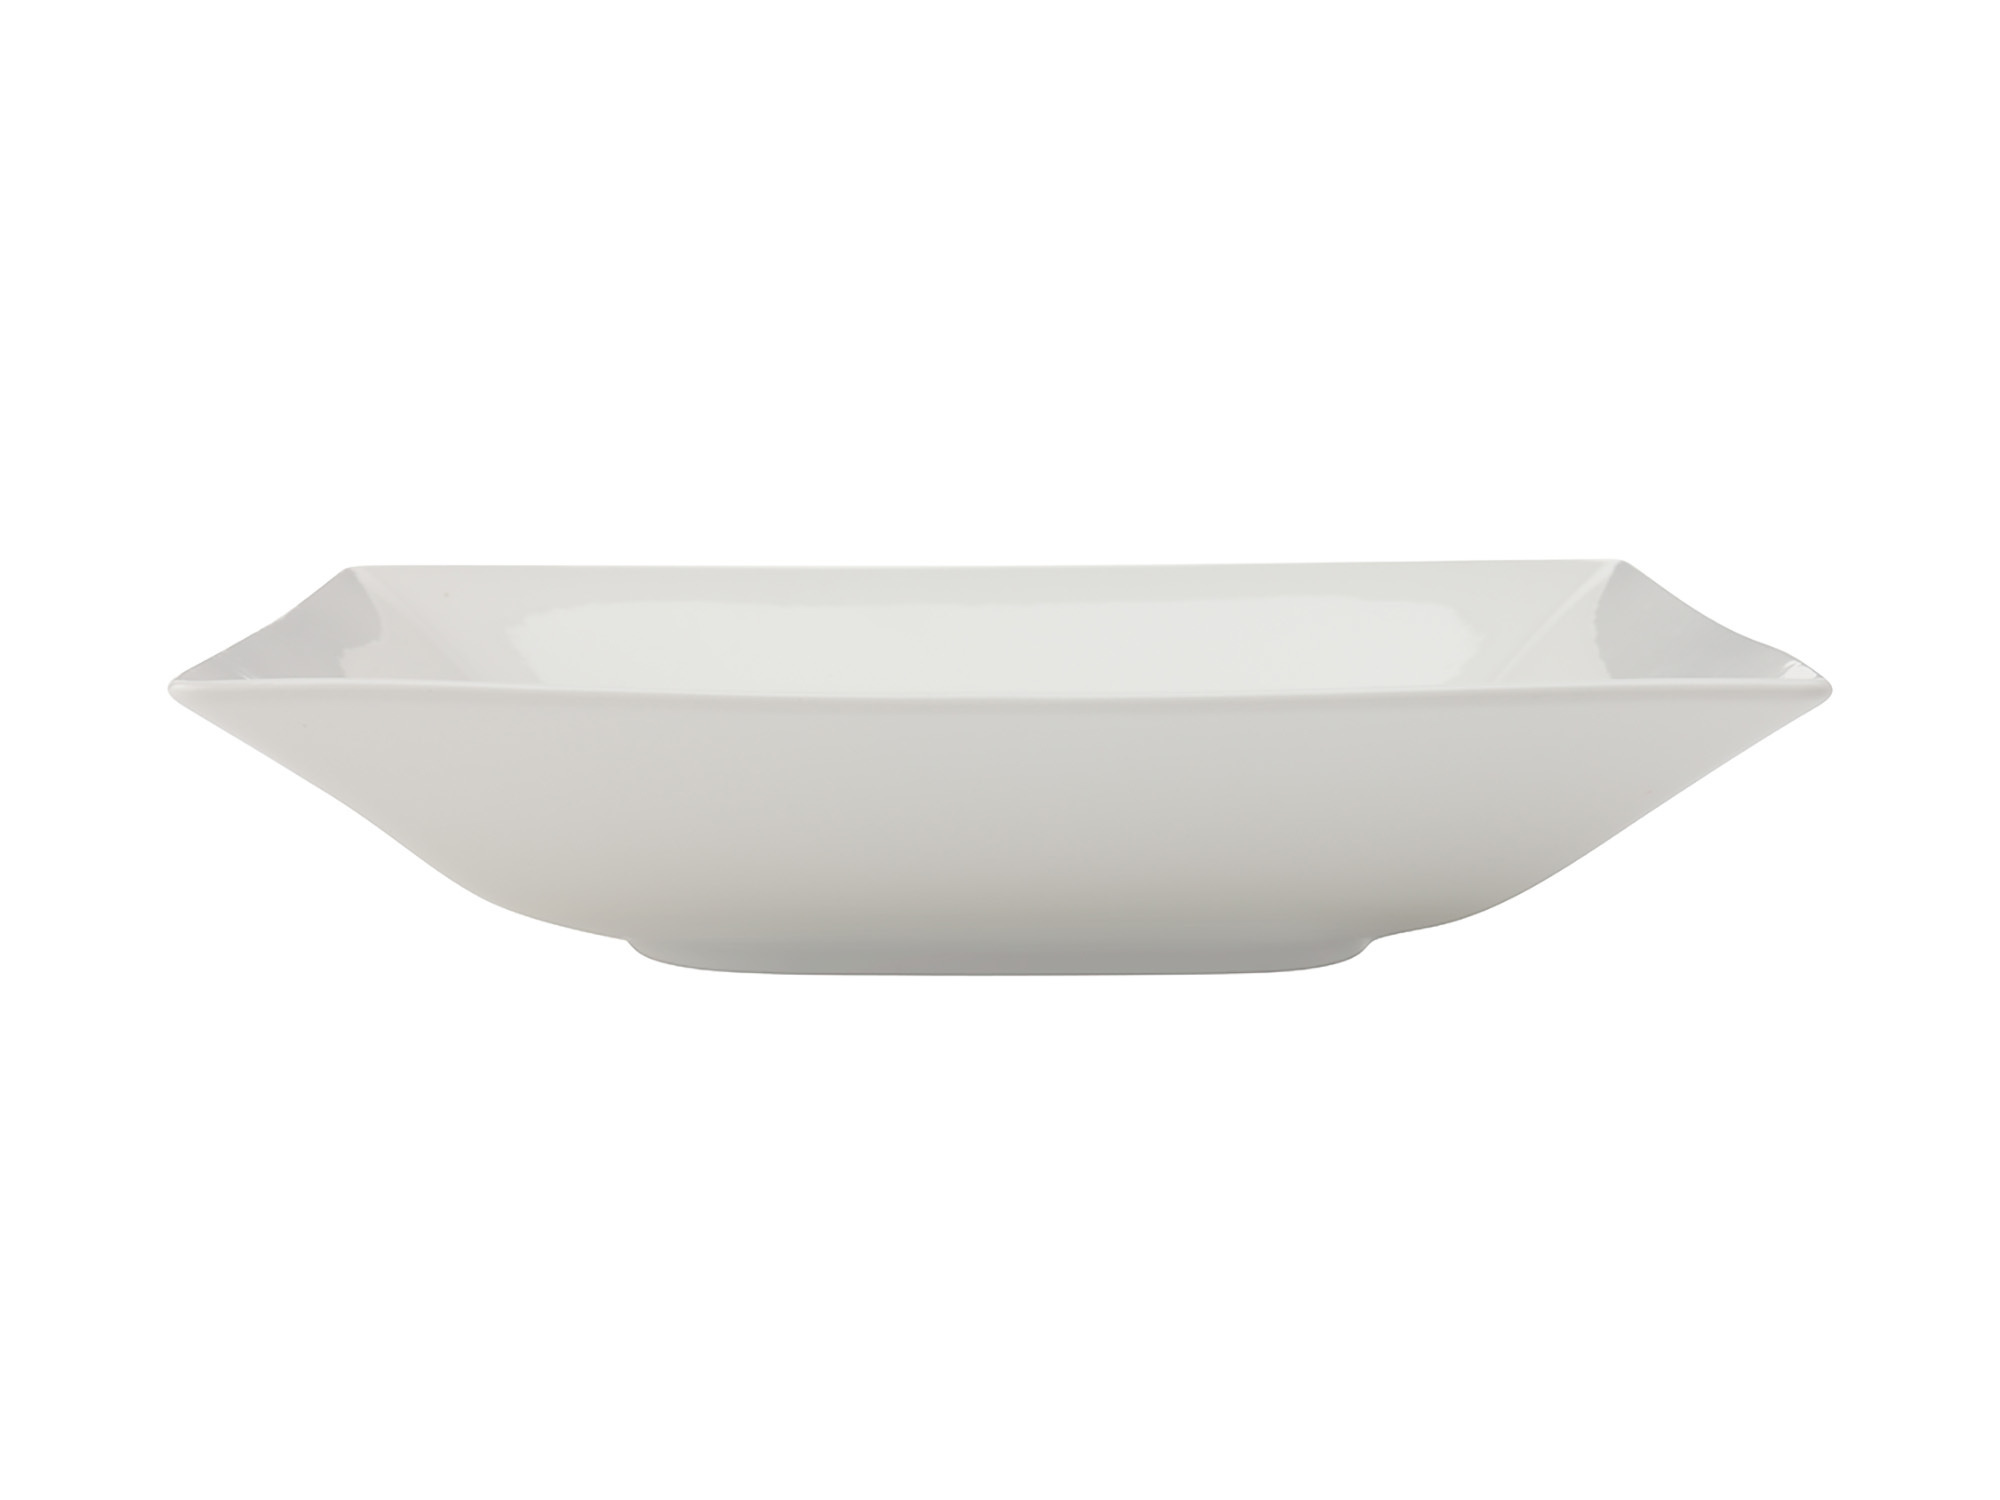 Maxwell & Williams White Basics Linear 26Cm Square Shallow Bowl